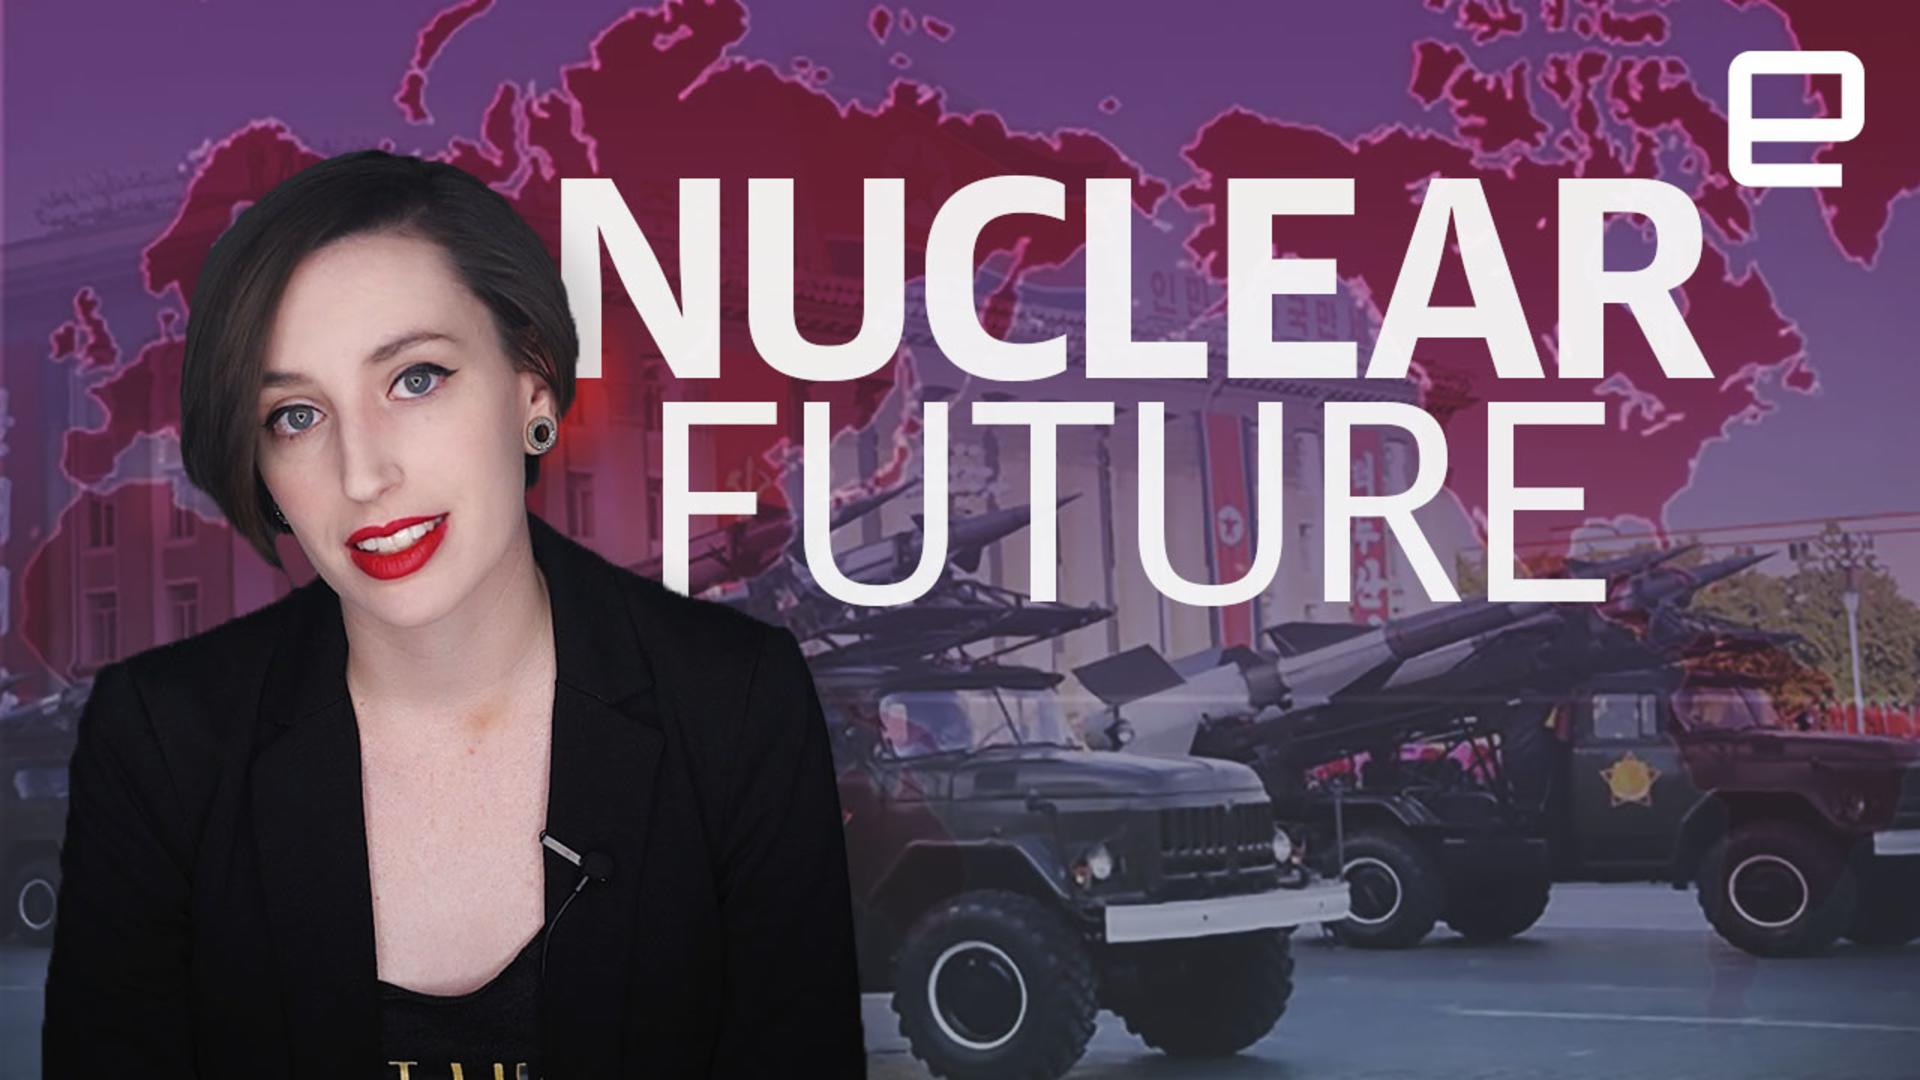 Nuclear warfare and the technology of peace